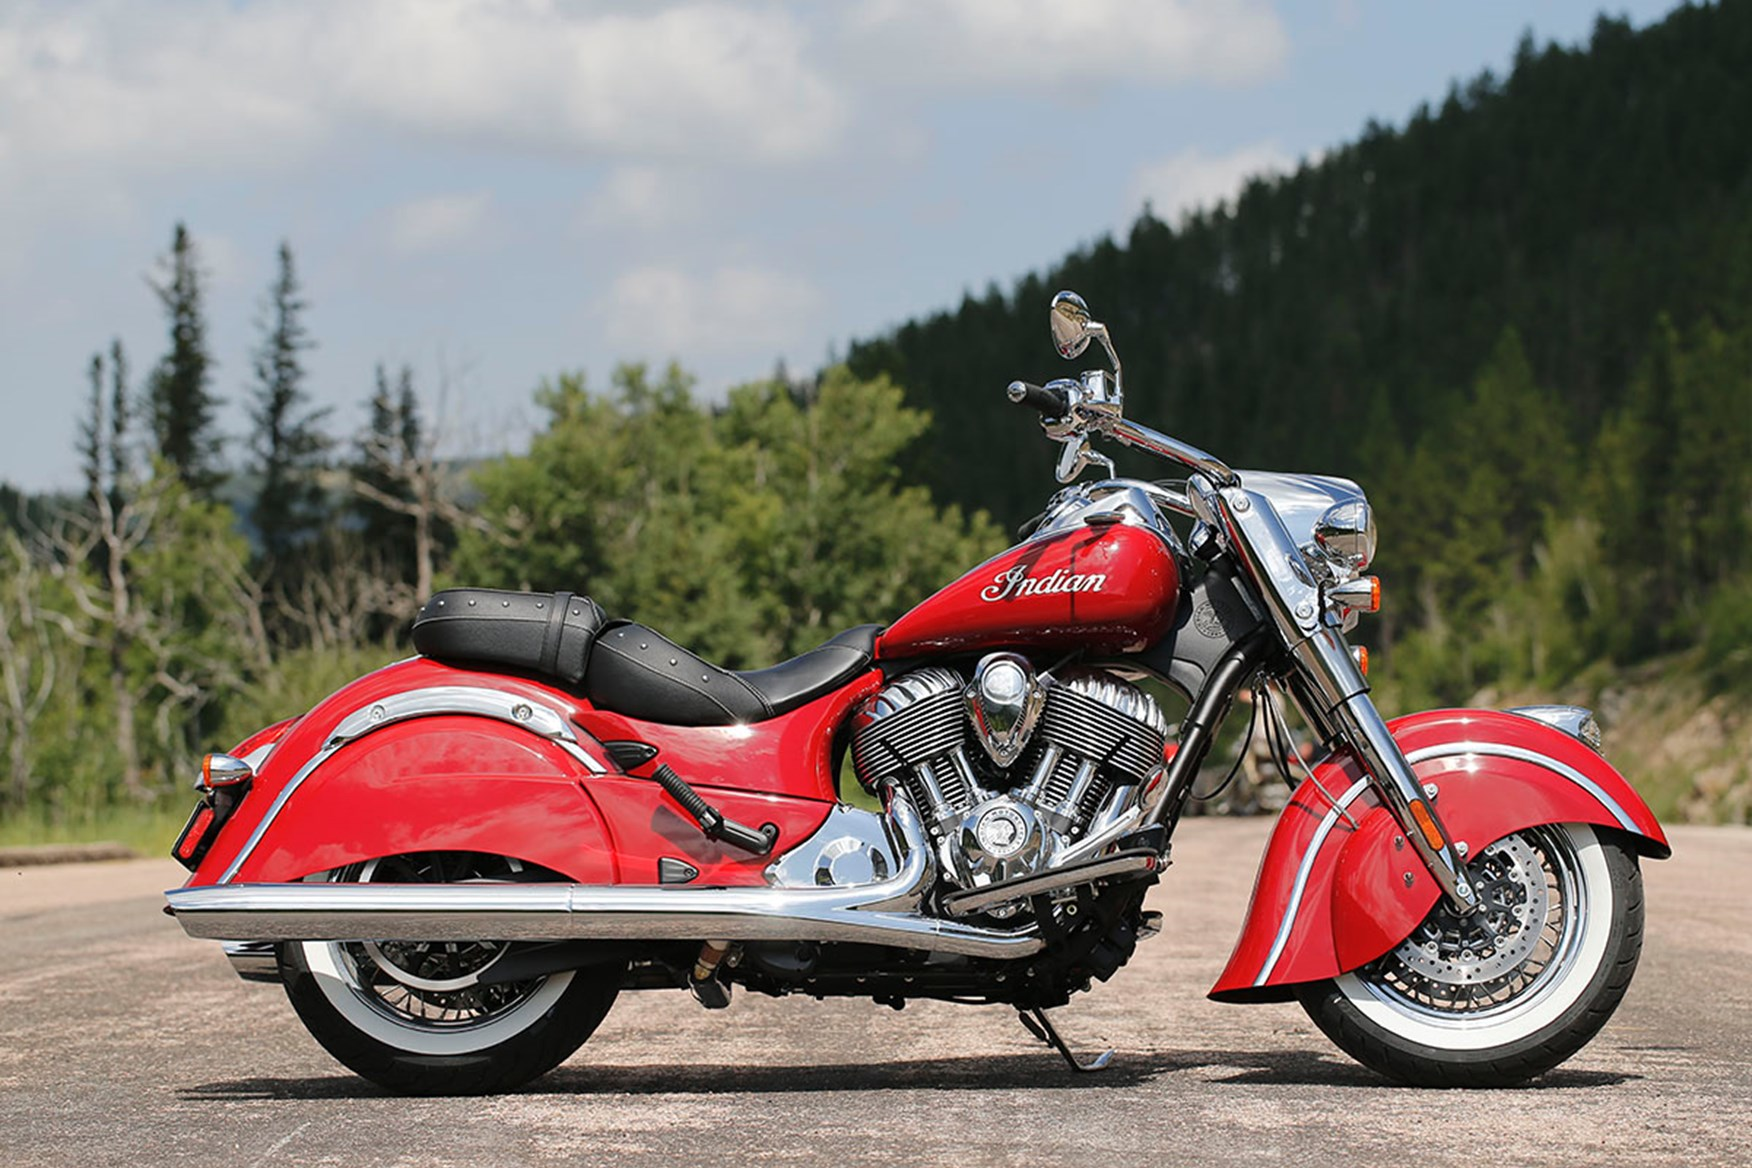 Victory Cruiser Deluxe 1500 2000 images #129426